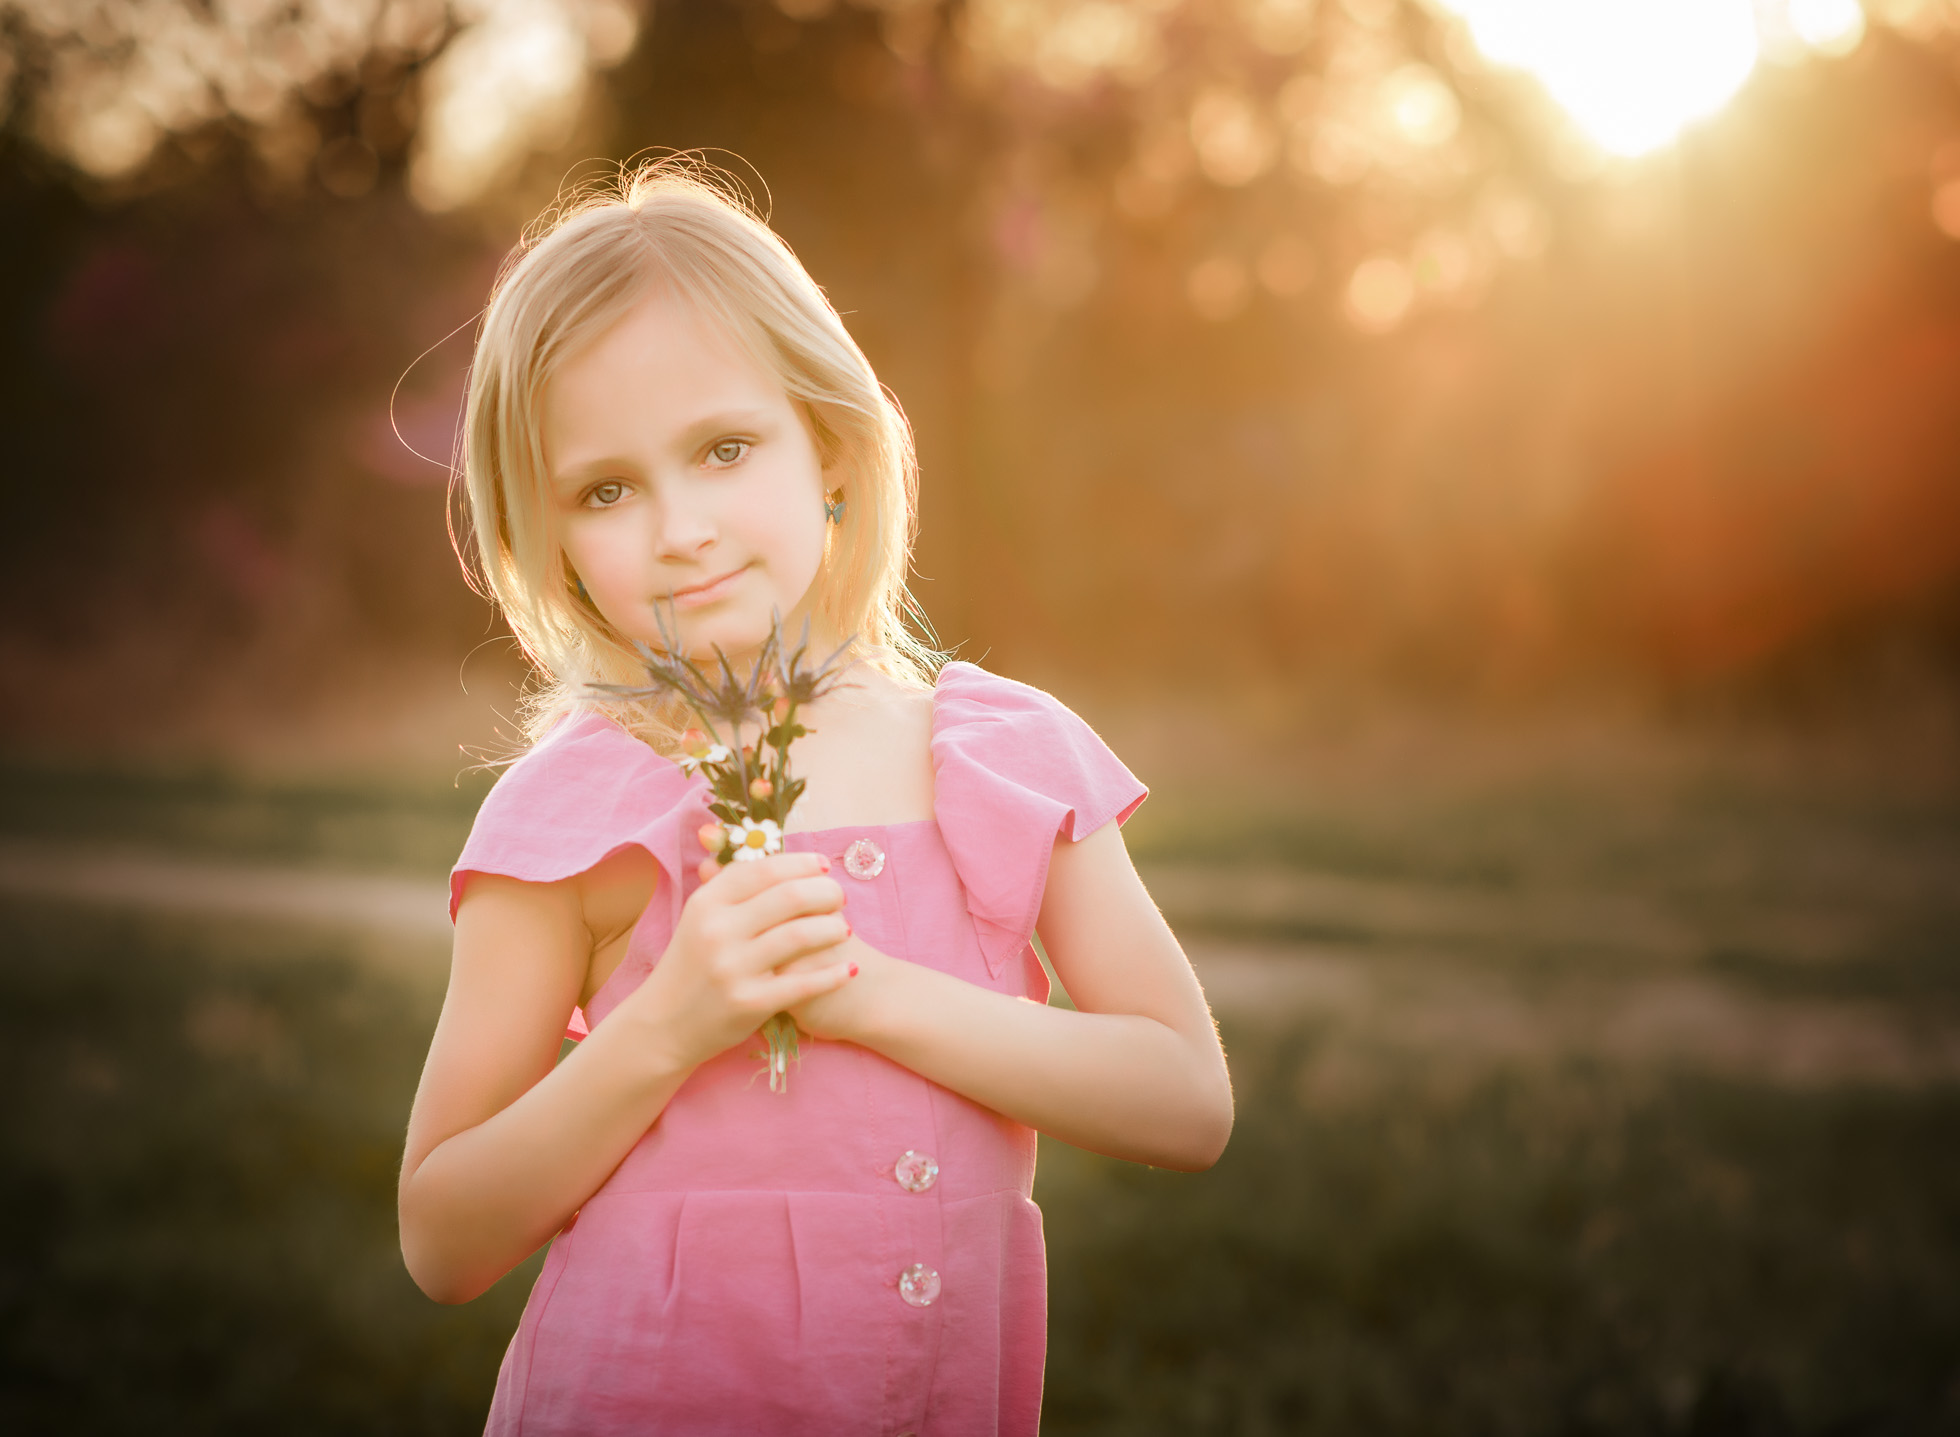 girl in pink shirt holding flowers after edit by kate luber